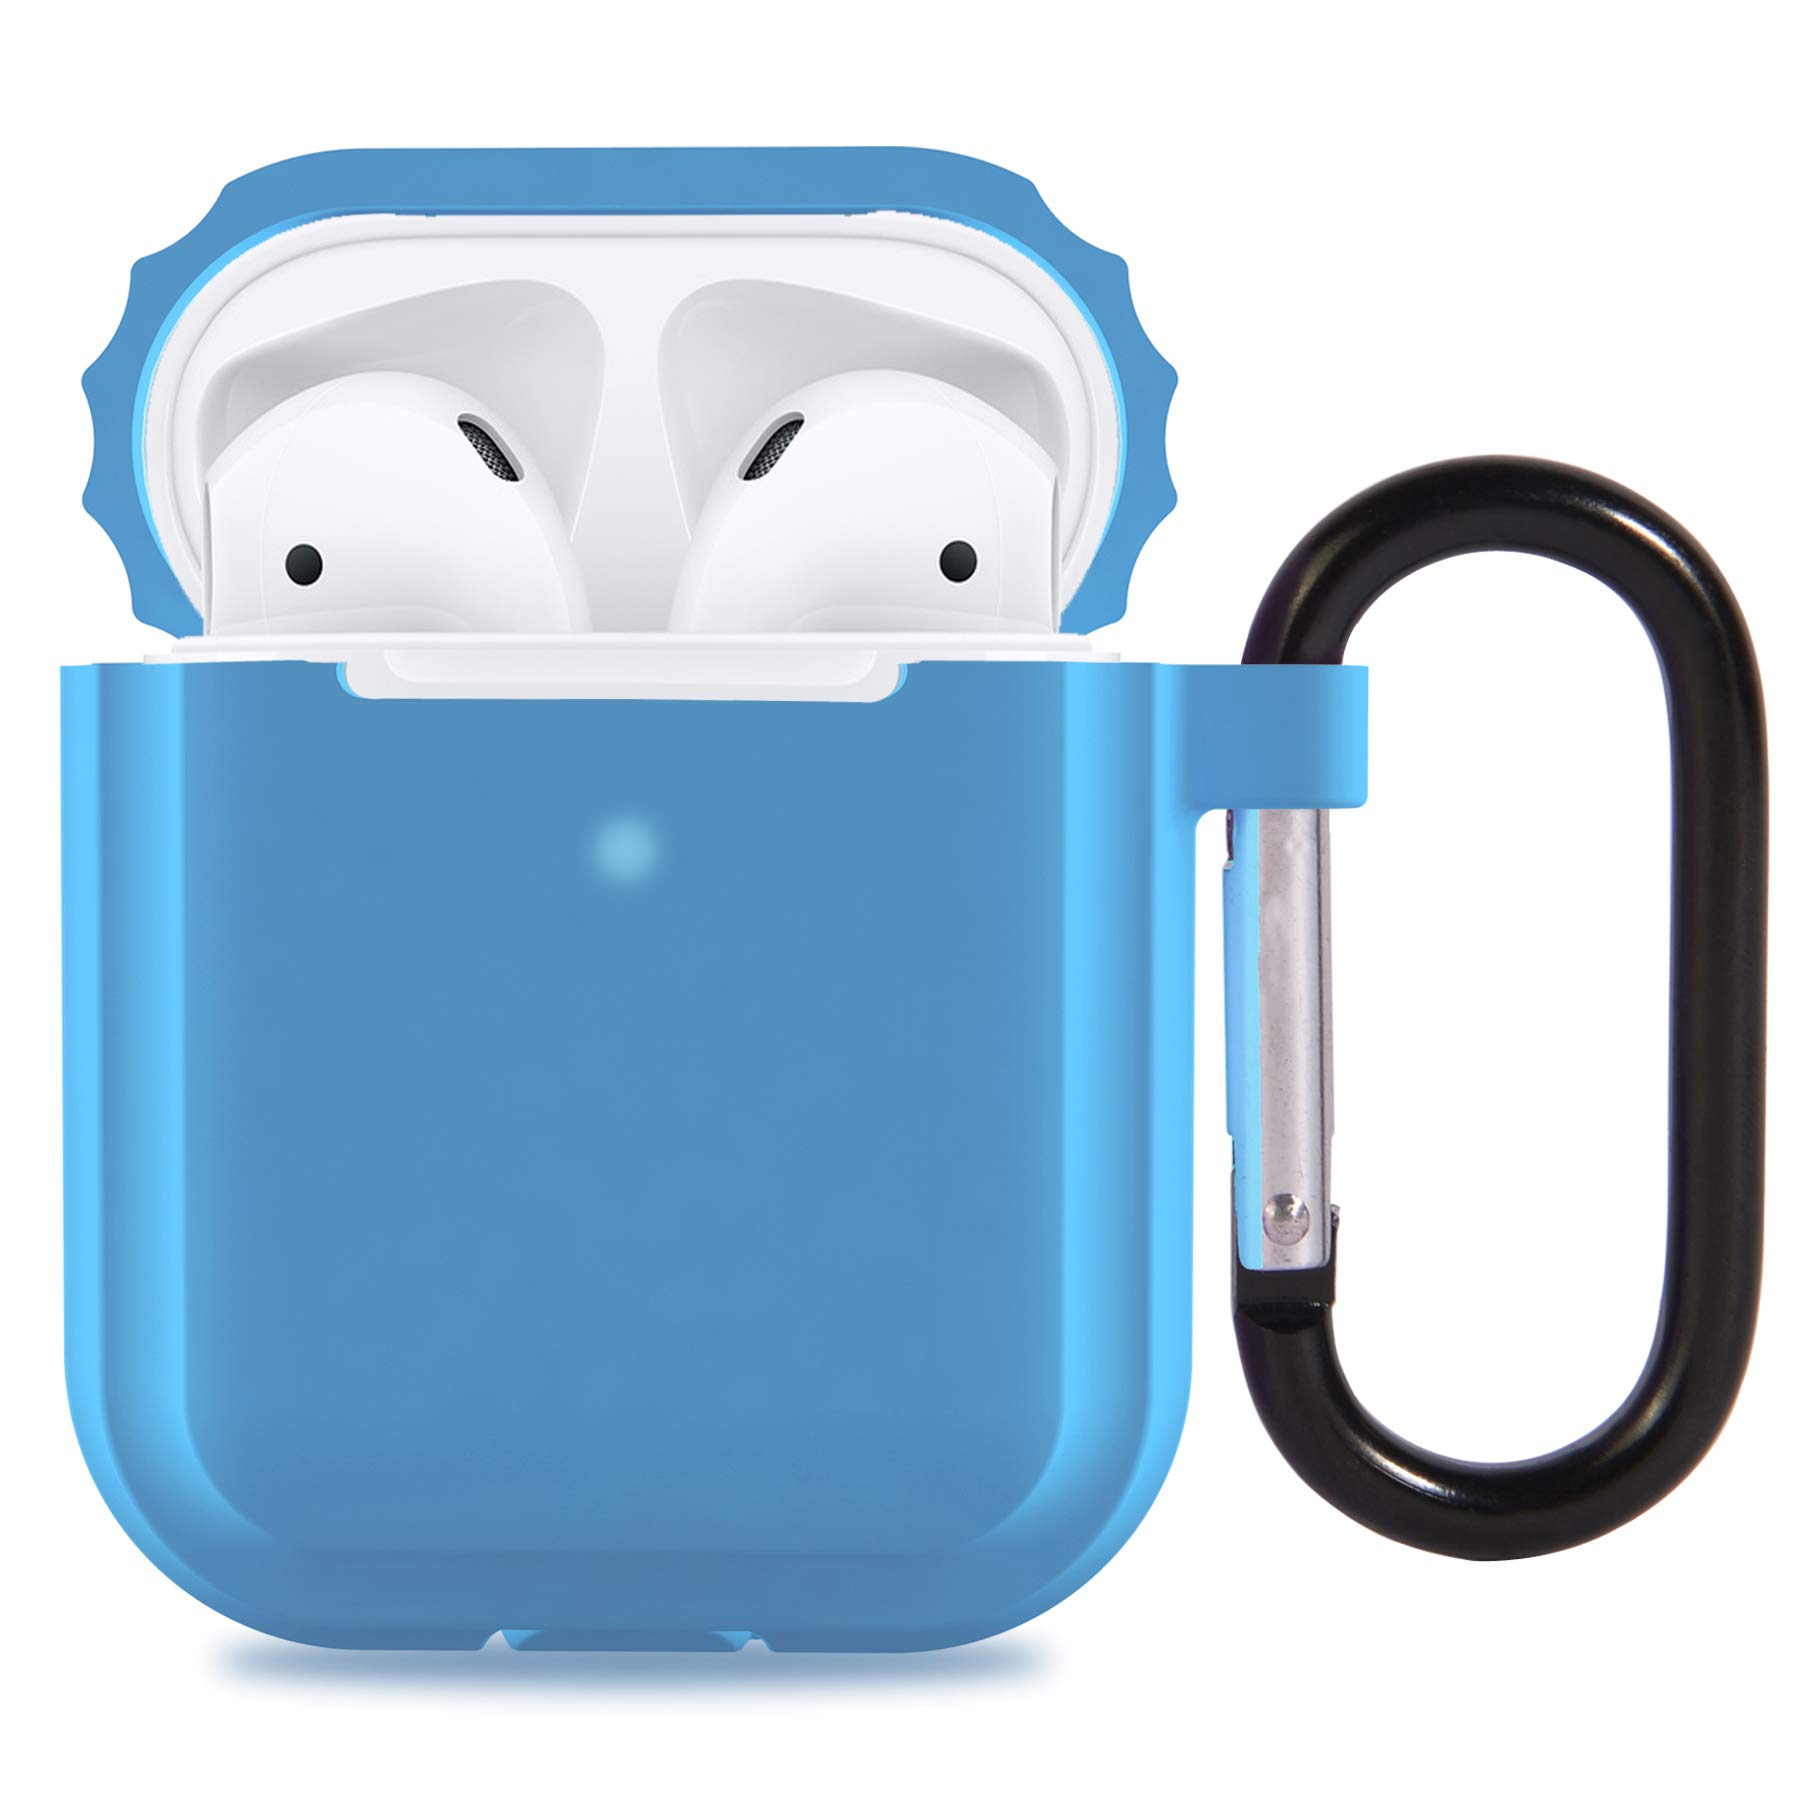 AirPods 2 Case Cover, Updated Version Silicone Protective Case and Skin for Airpods Charging Case,Support Wireless Charging with Front LED Light Visible (Blue)